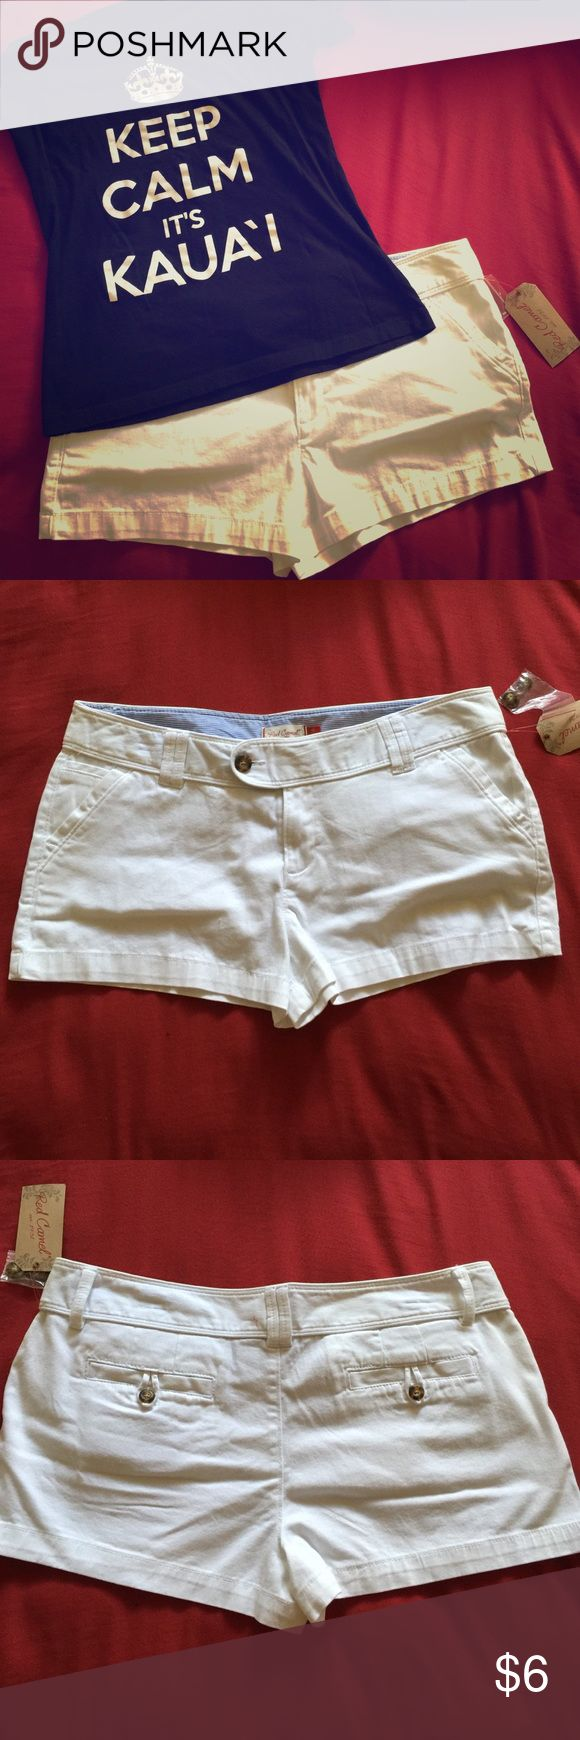 White Shorts NEW WITH TAGS!! Has a really small pen mark on back that could easily be covered with a belt. Re-Poshing, don't like the way it fits on me. Also check out other items in closet to bundle and save!! Red Camel Shorts